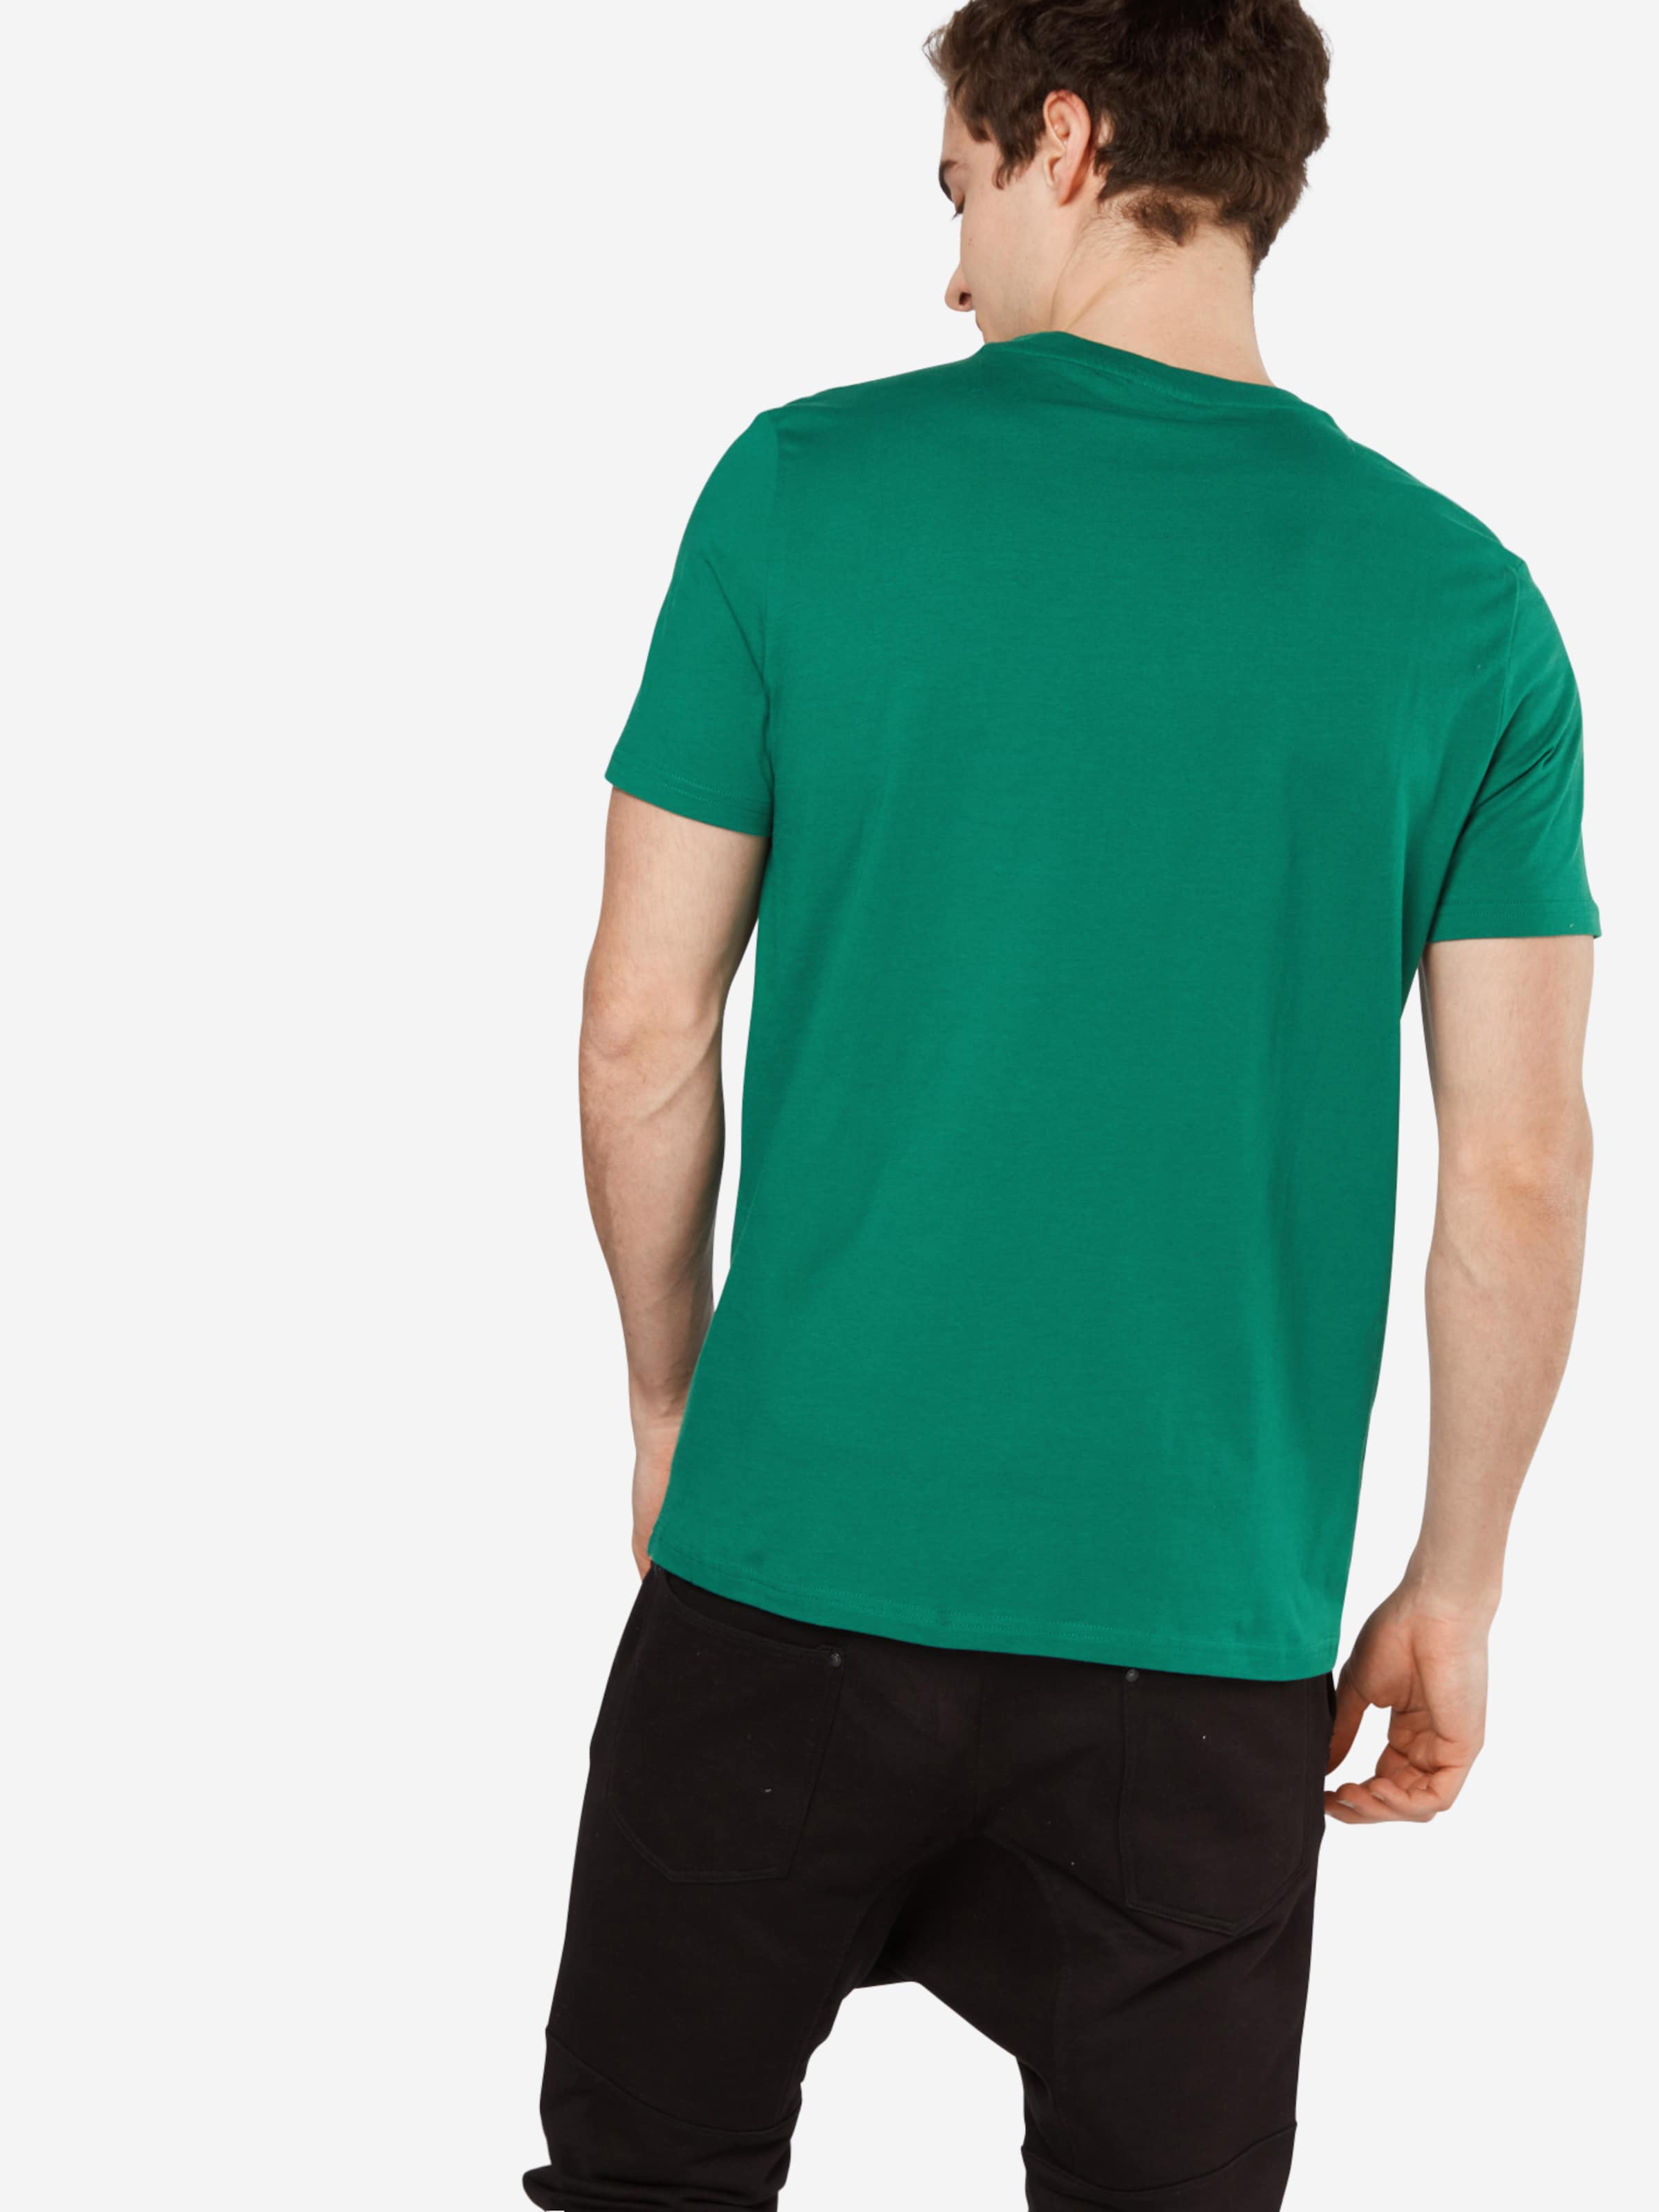 Champion Authentic Athletic Apparel T-Shirt mit Front-Print Online-Shopping Mit Mastercard Limited Edition Online OTUtfVM